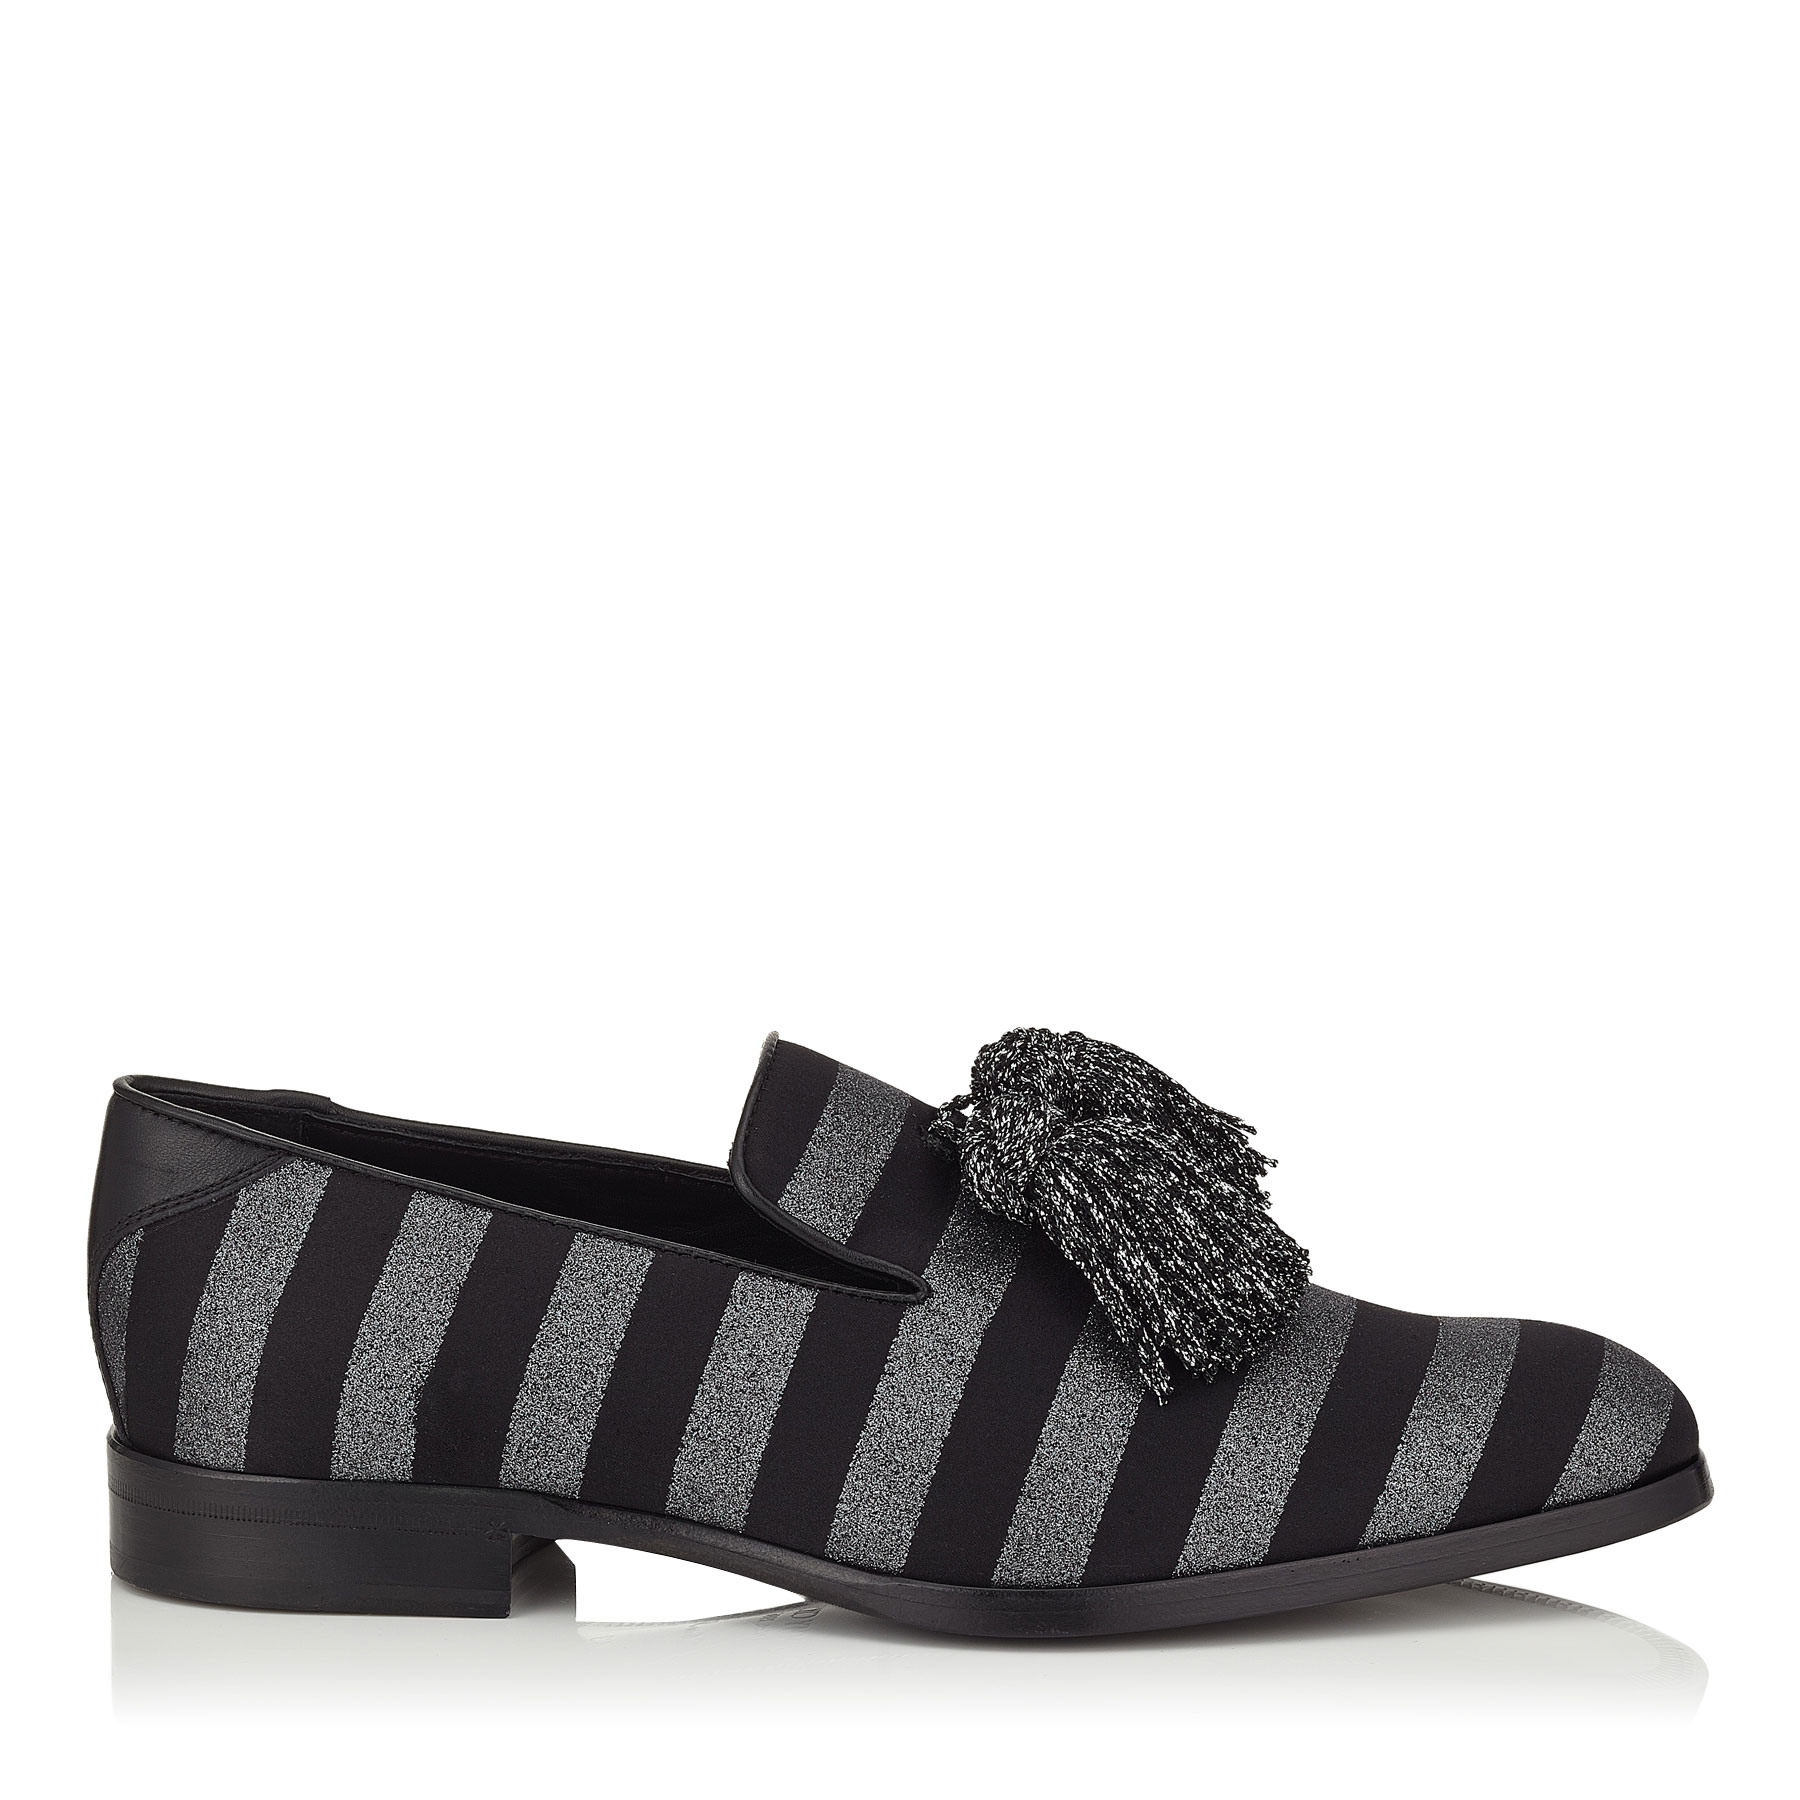 FOXLEY Black and Gunmetal Glitter Striped Fabric Tasselled Slippers